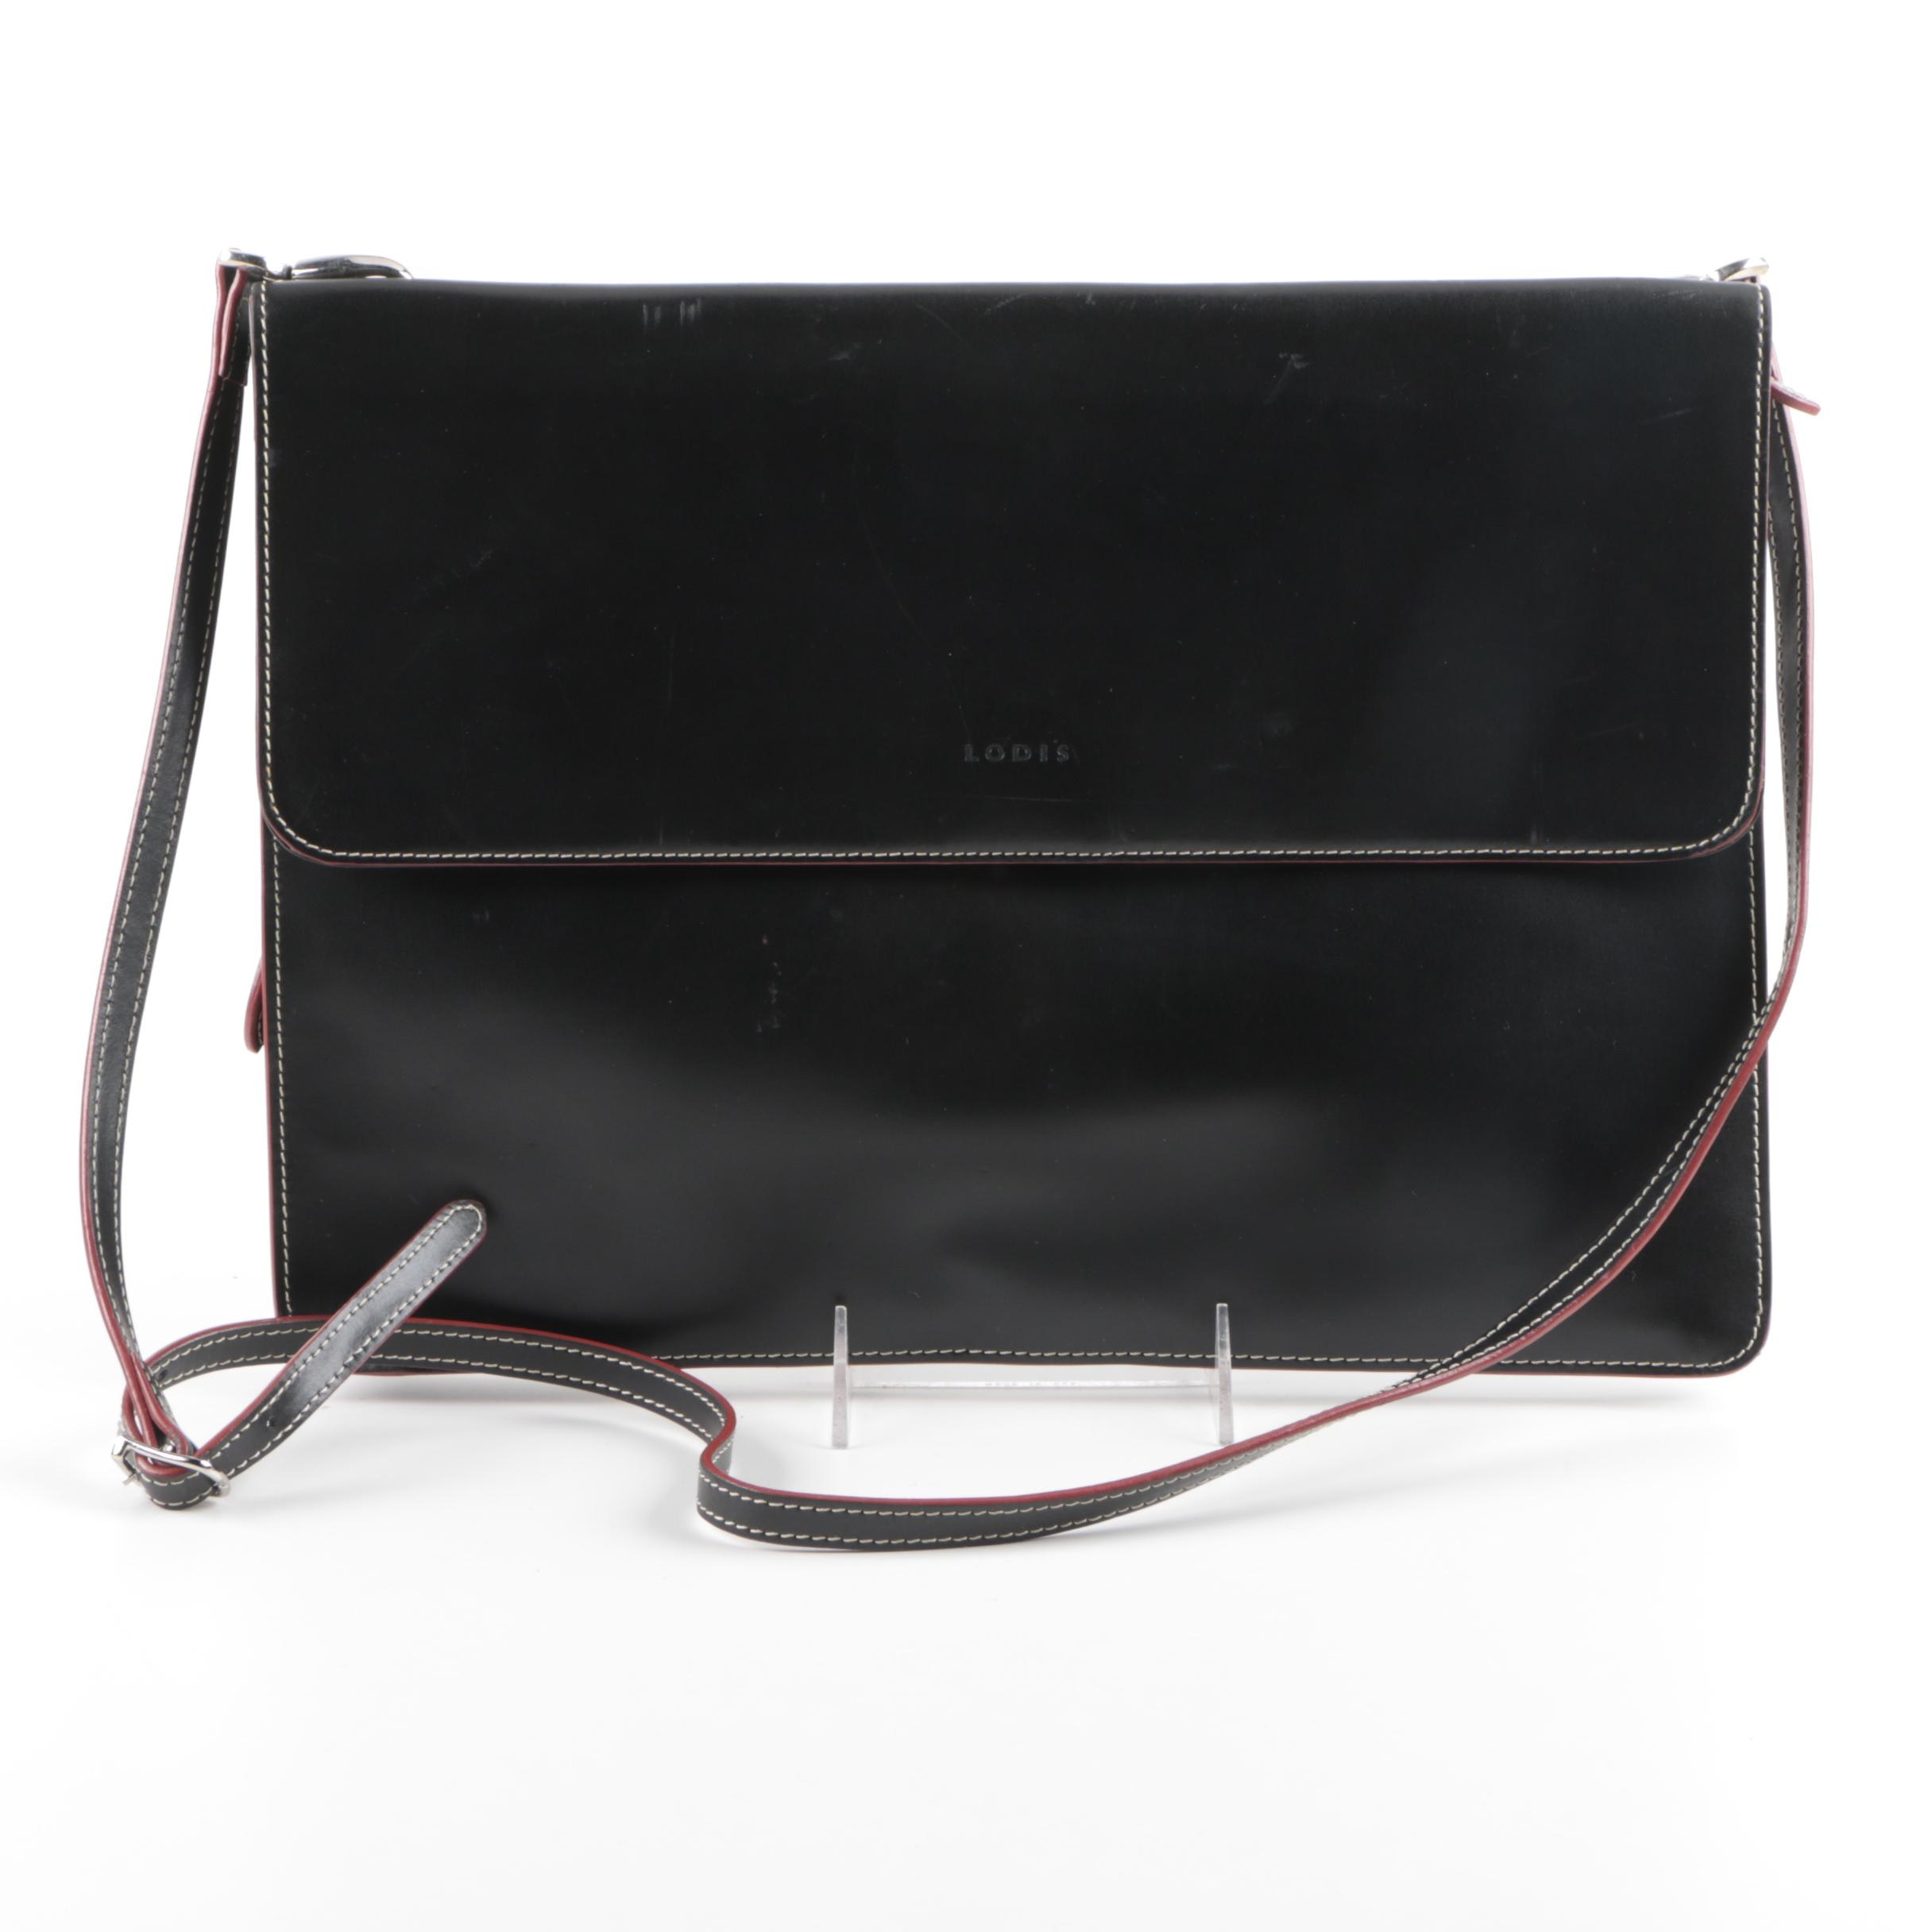 Lodis Black Leather Envelope Briefcase